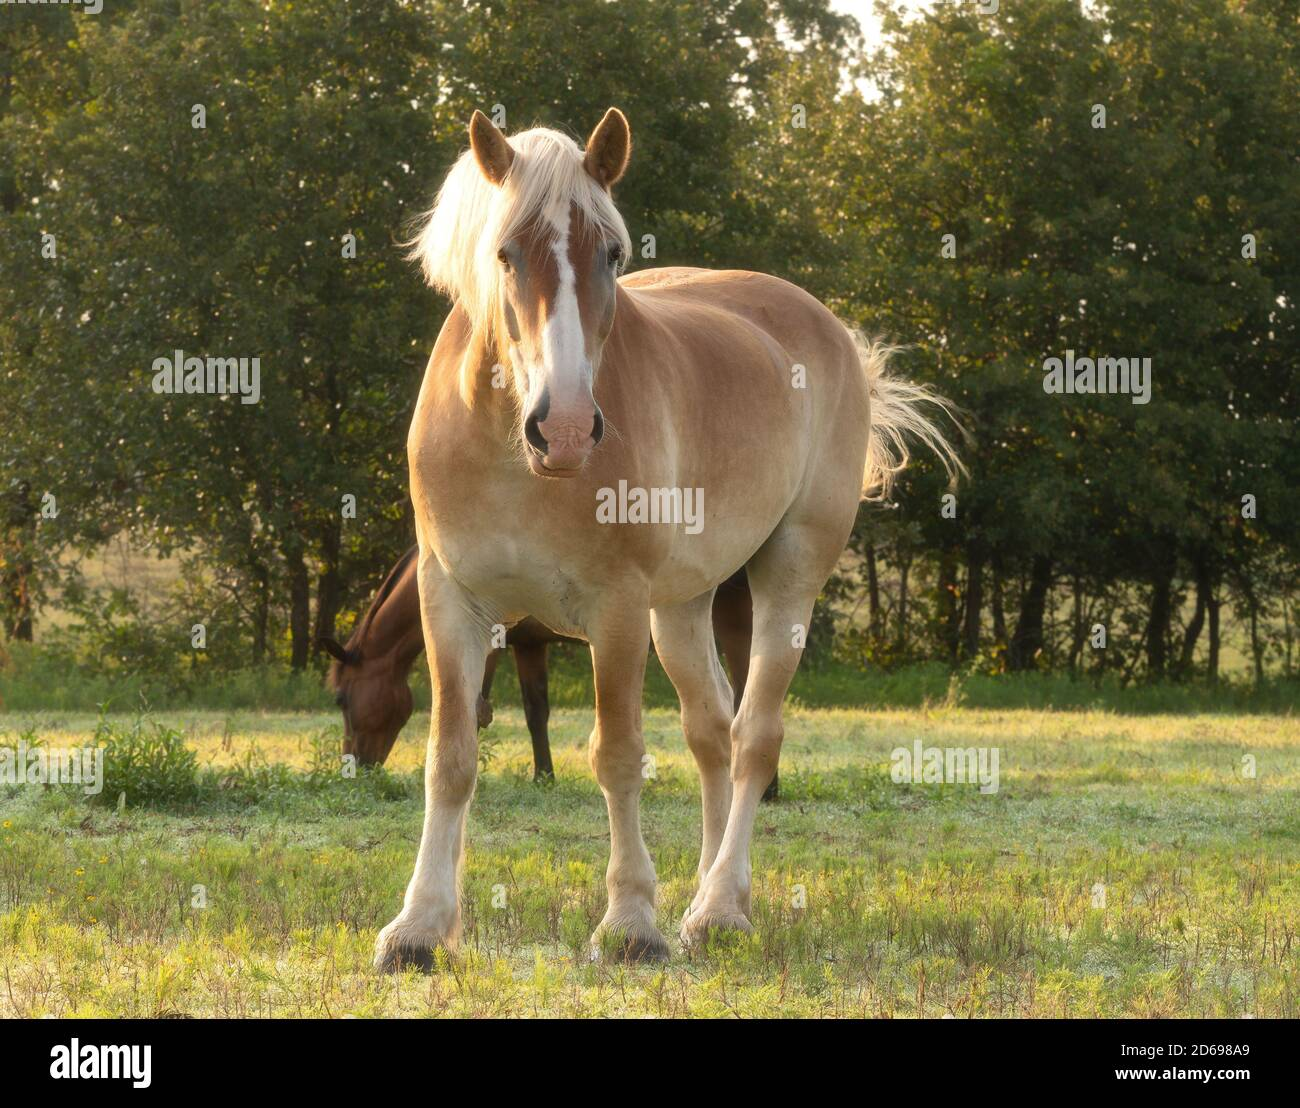 Light Draft Horse High Resolution Stock Photography And Images Alamy